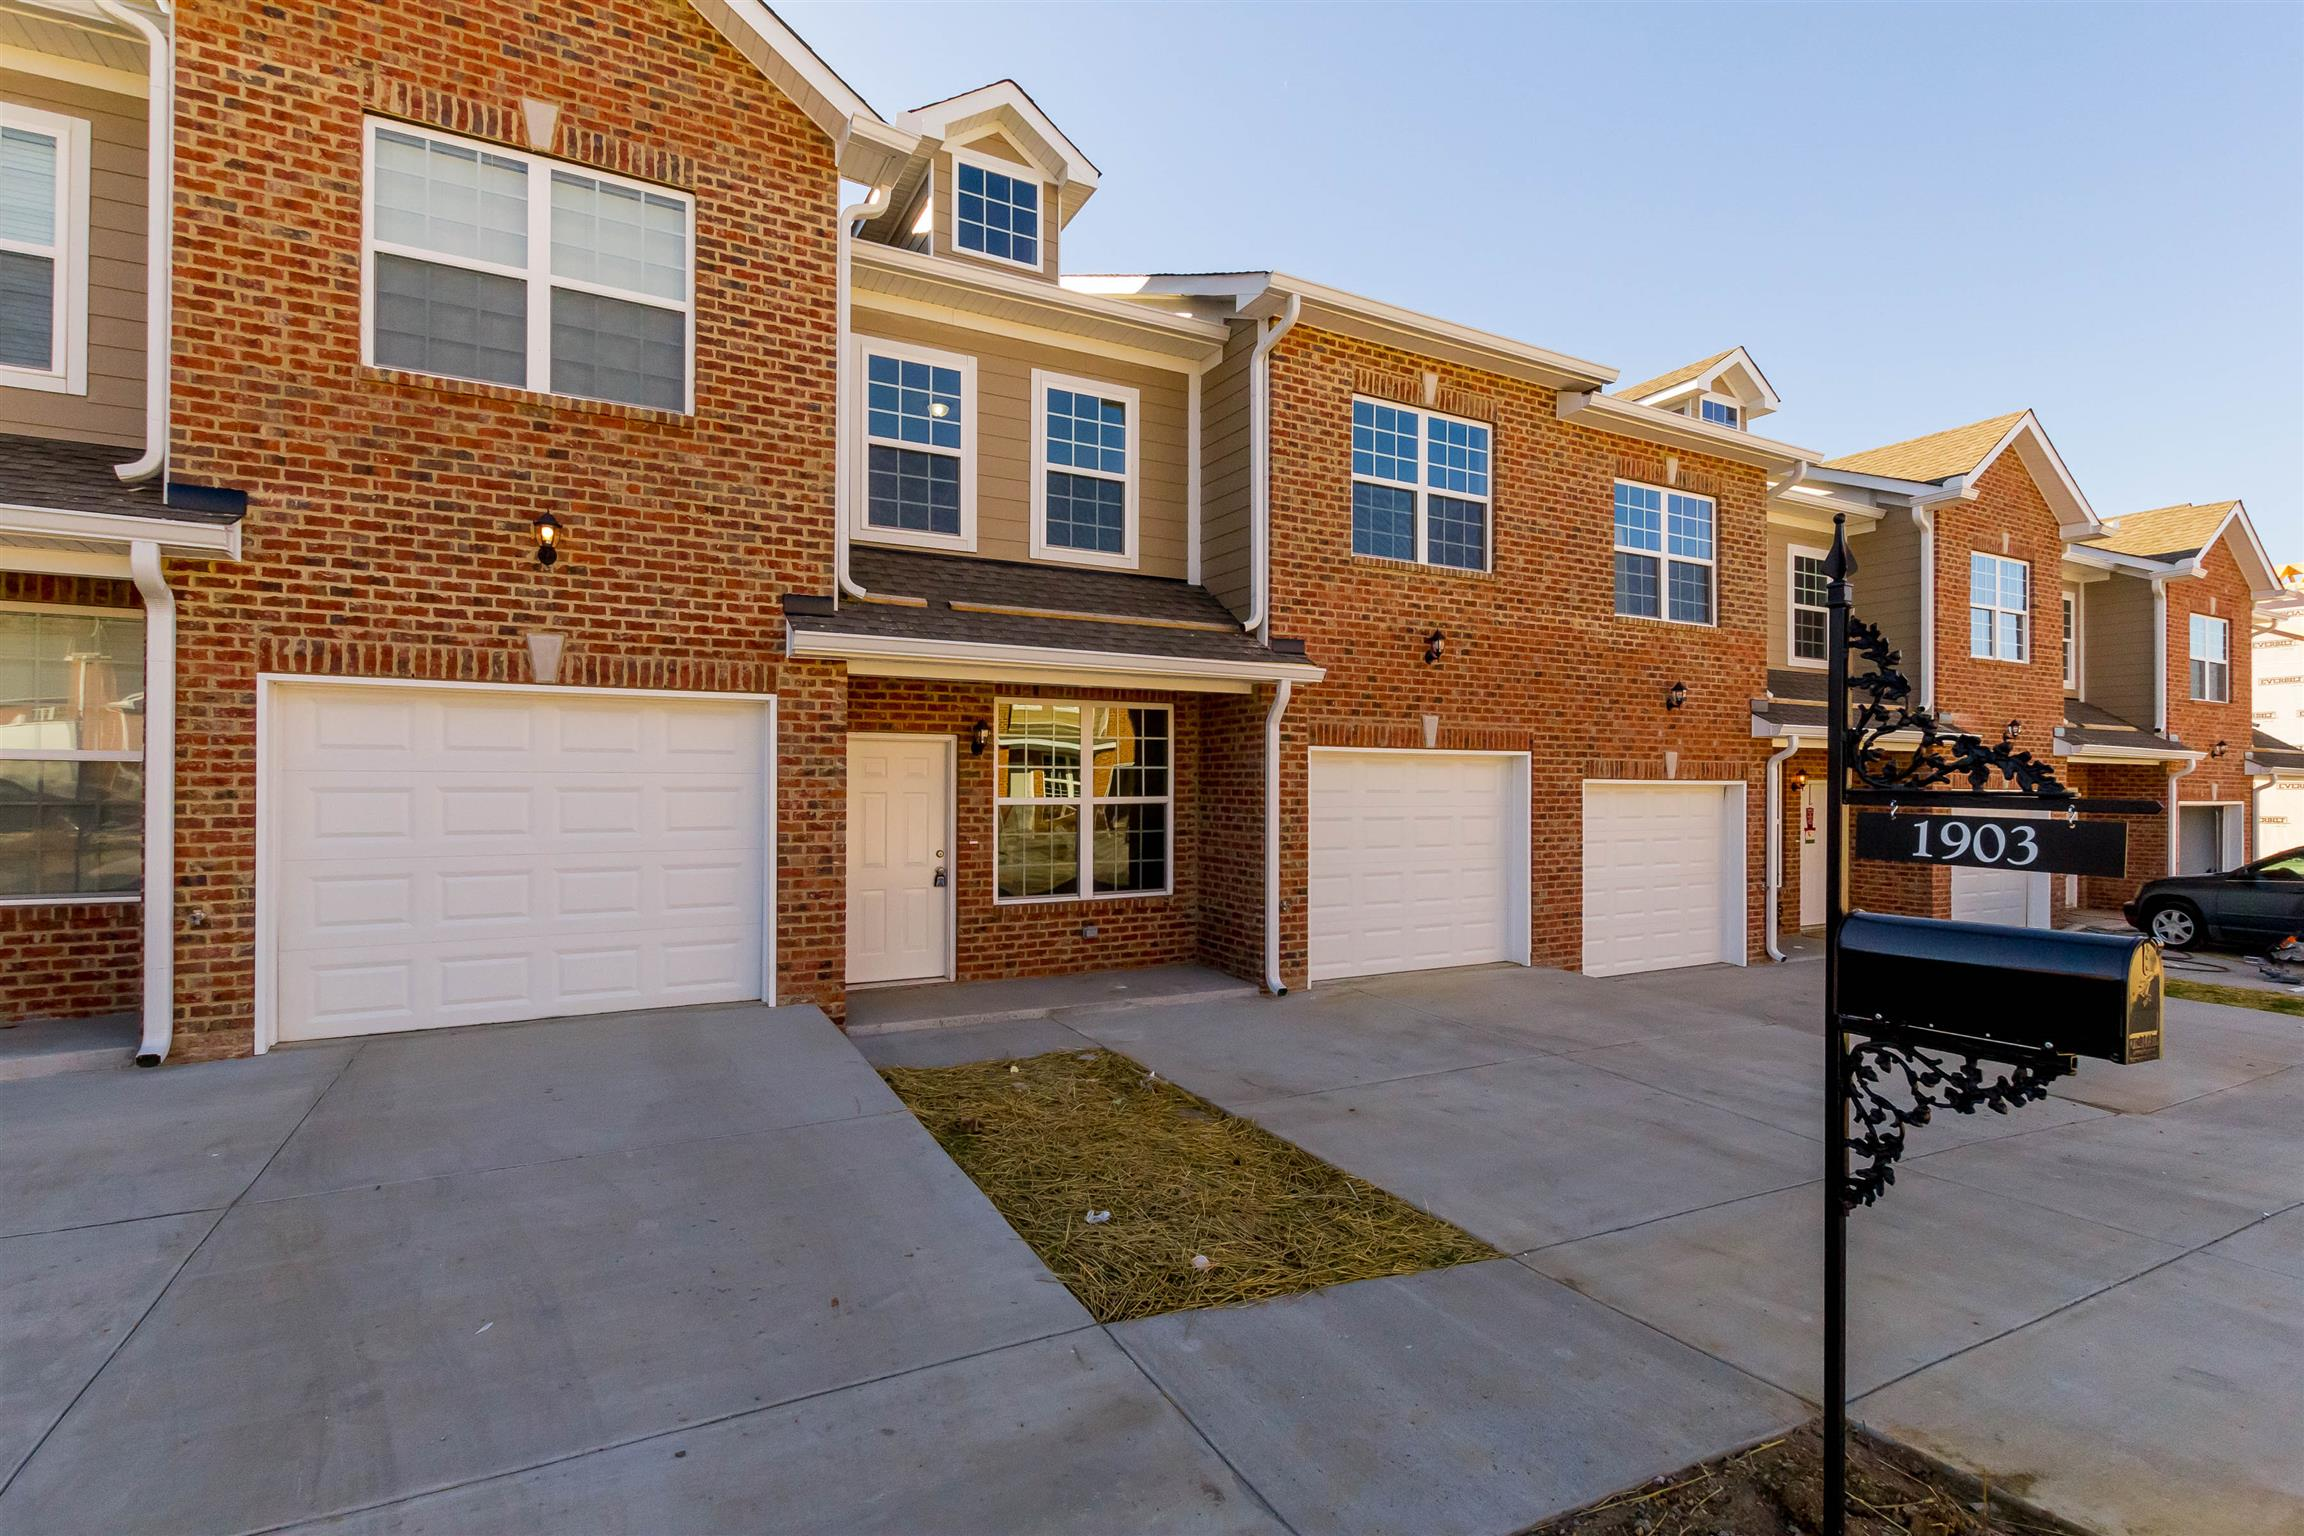 1603 Villa Cir, one of homes for sale in Lebanon